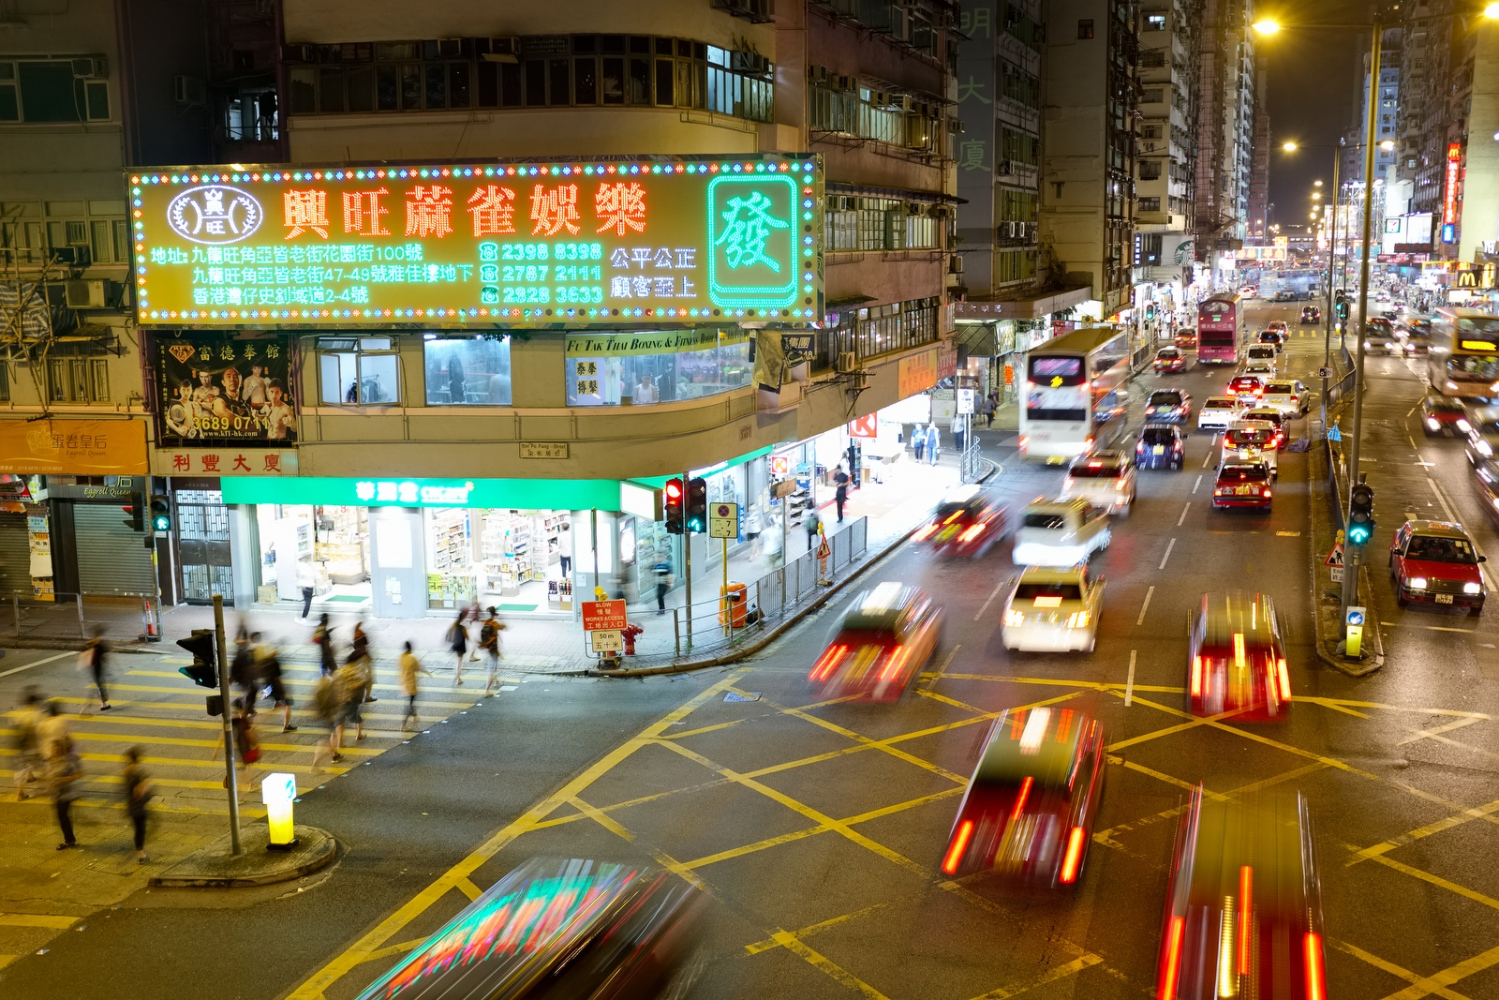 The corner of Luella Wan and Argyle at night, Kowloon, Hong Kong.